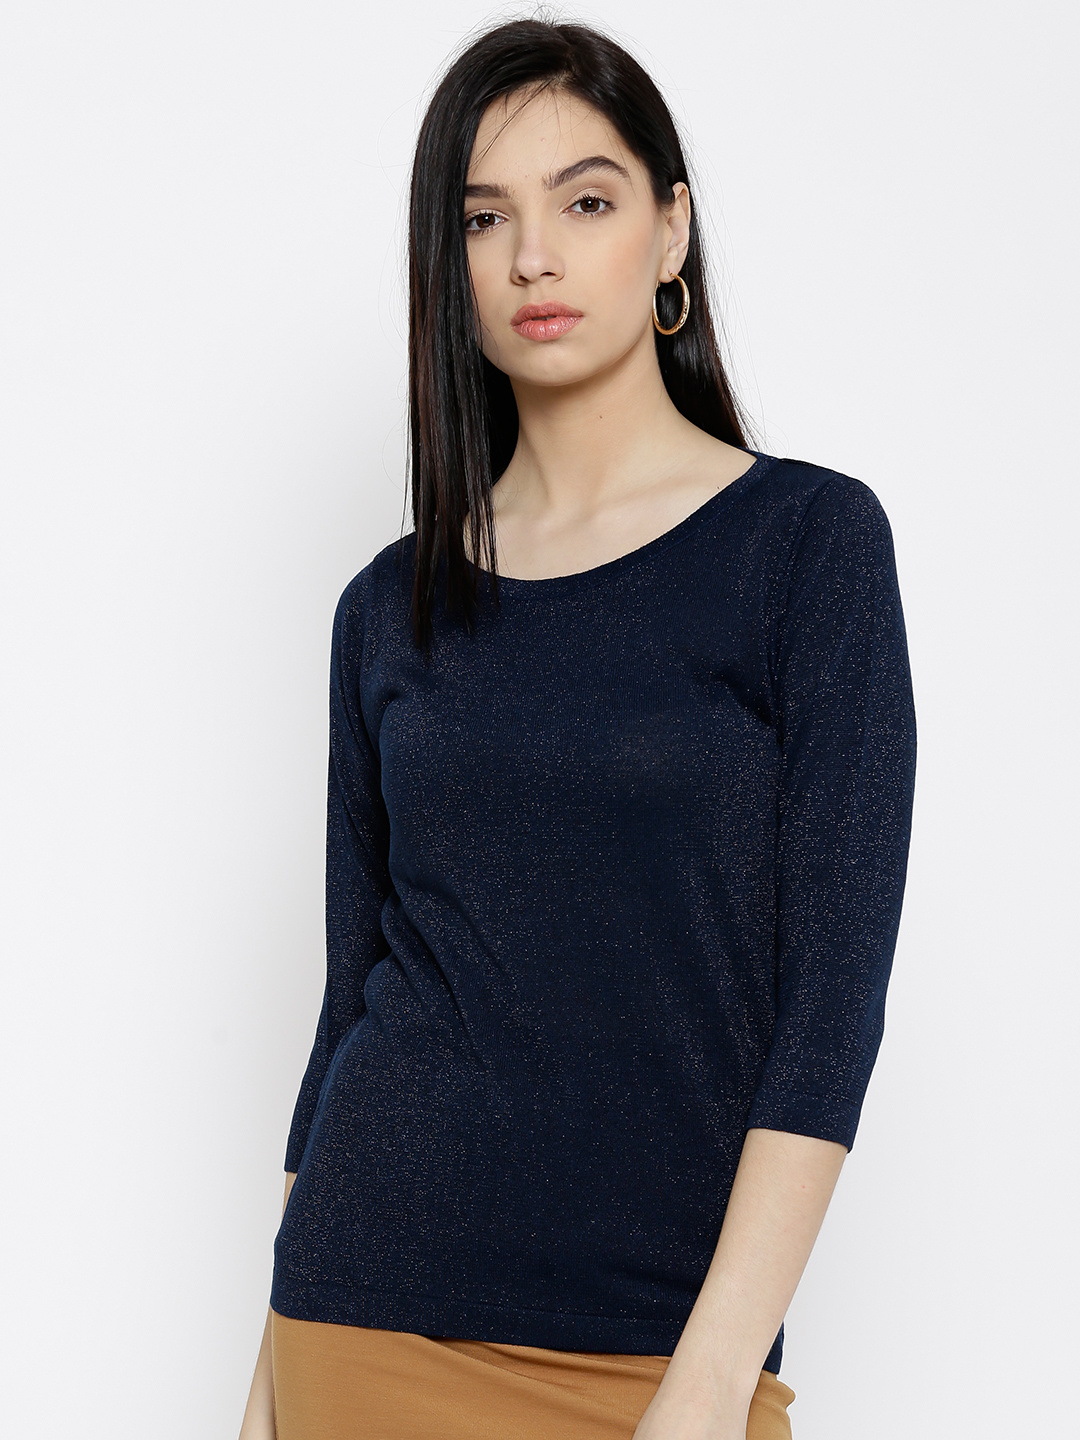 A Dark Navy Blue coloured Top Lady Poses for Fall Bloomers LNLMakeover